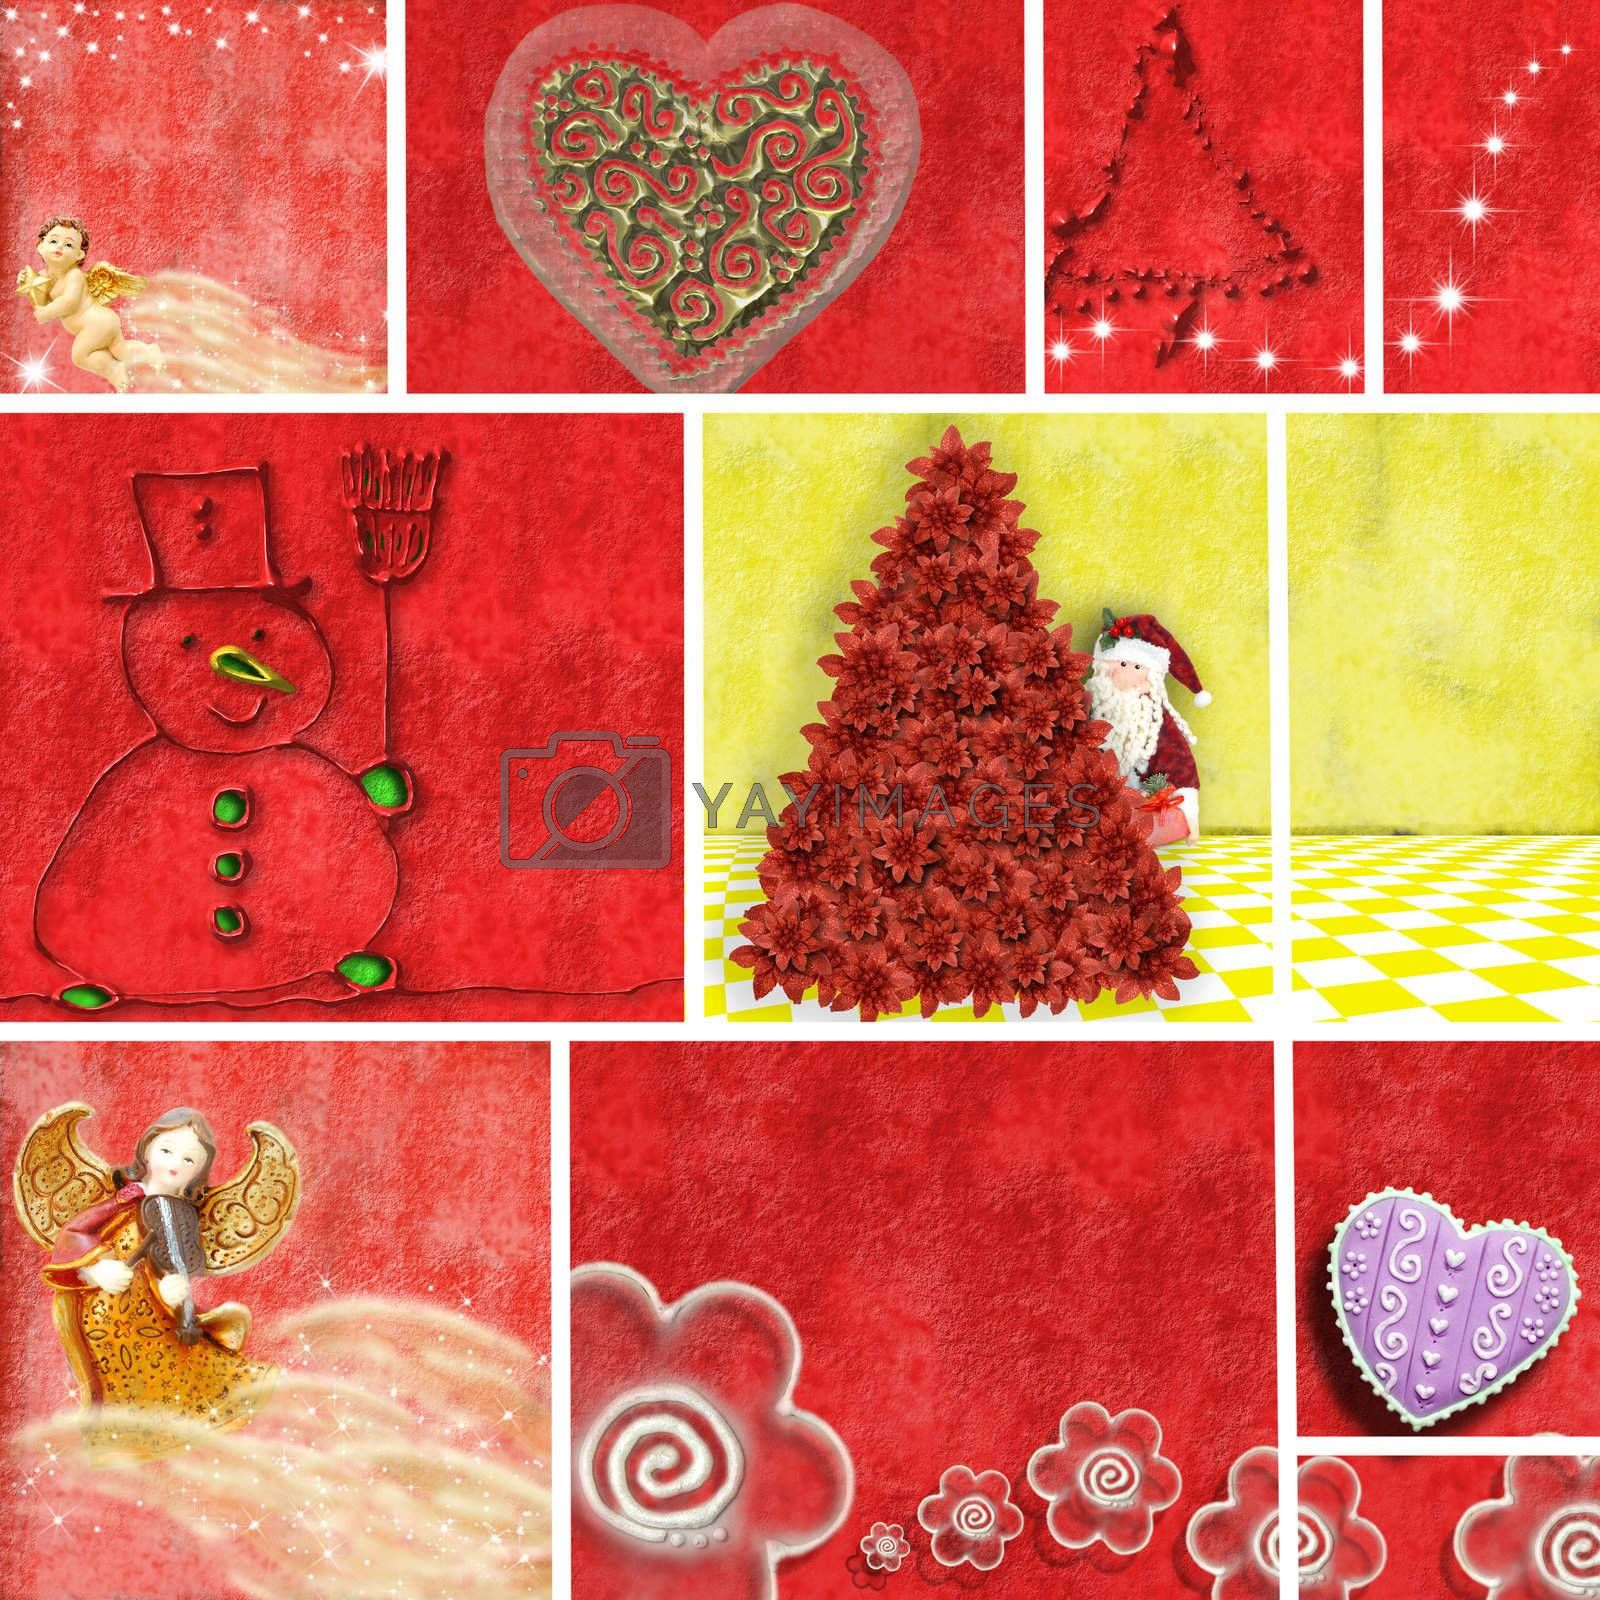 Christmas collage illustrations in shades of red and yellow